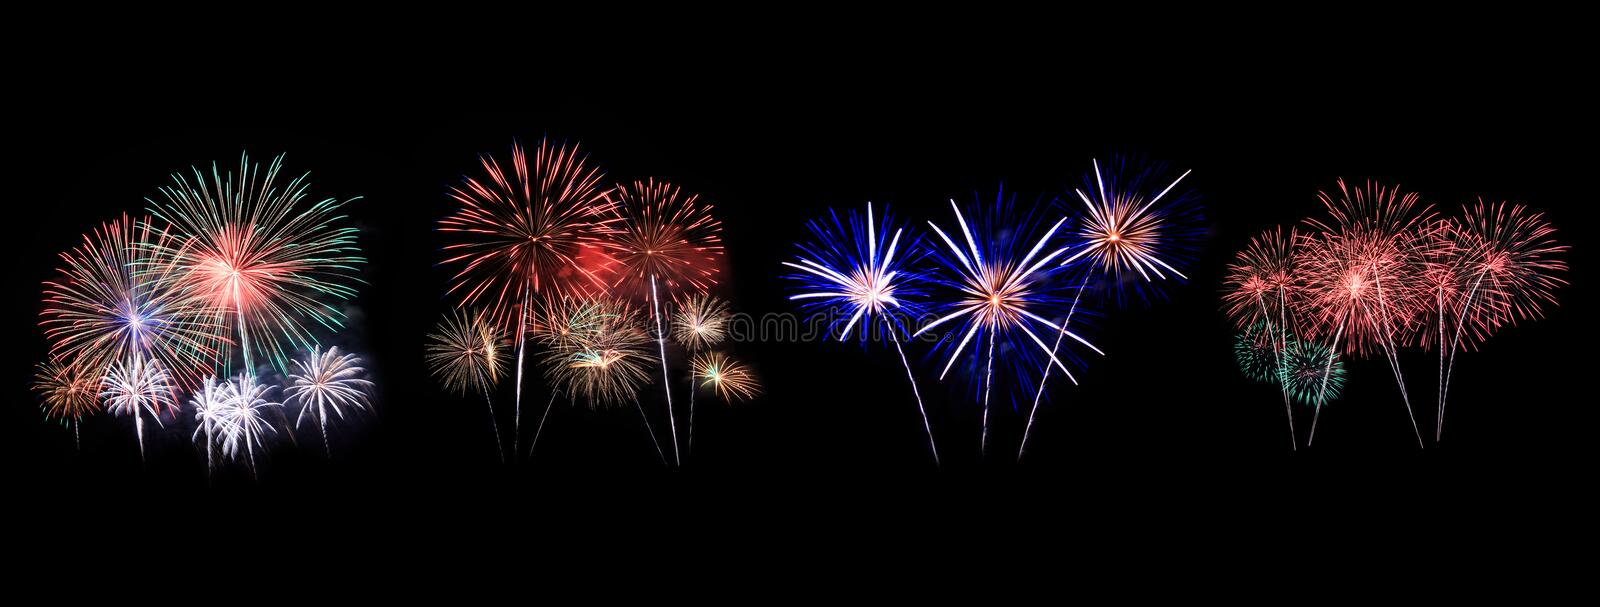 Fireworks display in celebration. royalty free stock photography